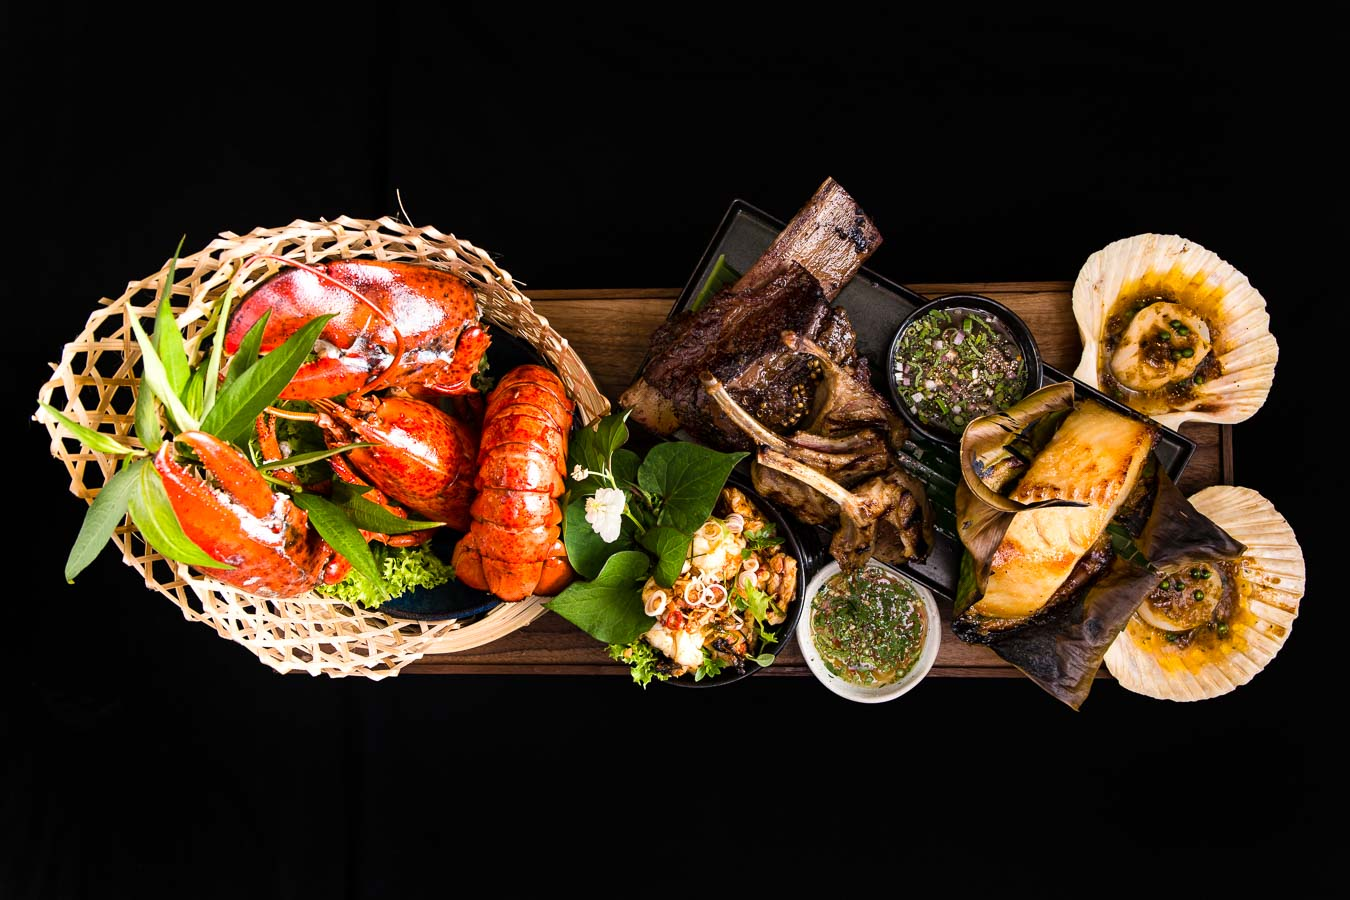 Top down, dramatic photo of a sharing seafood platter. Including a wicker basket of cooked lobster tails and claws, ribs, fish, dipping sauces and oysters in their shells. A celebration of surf and turf